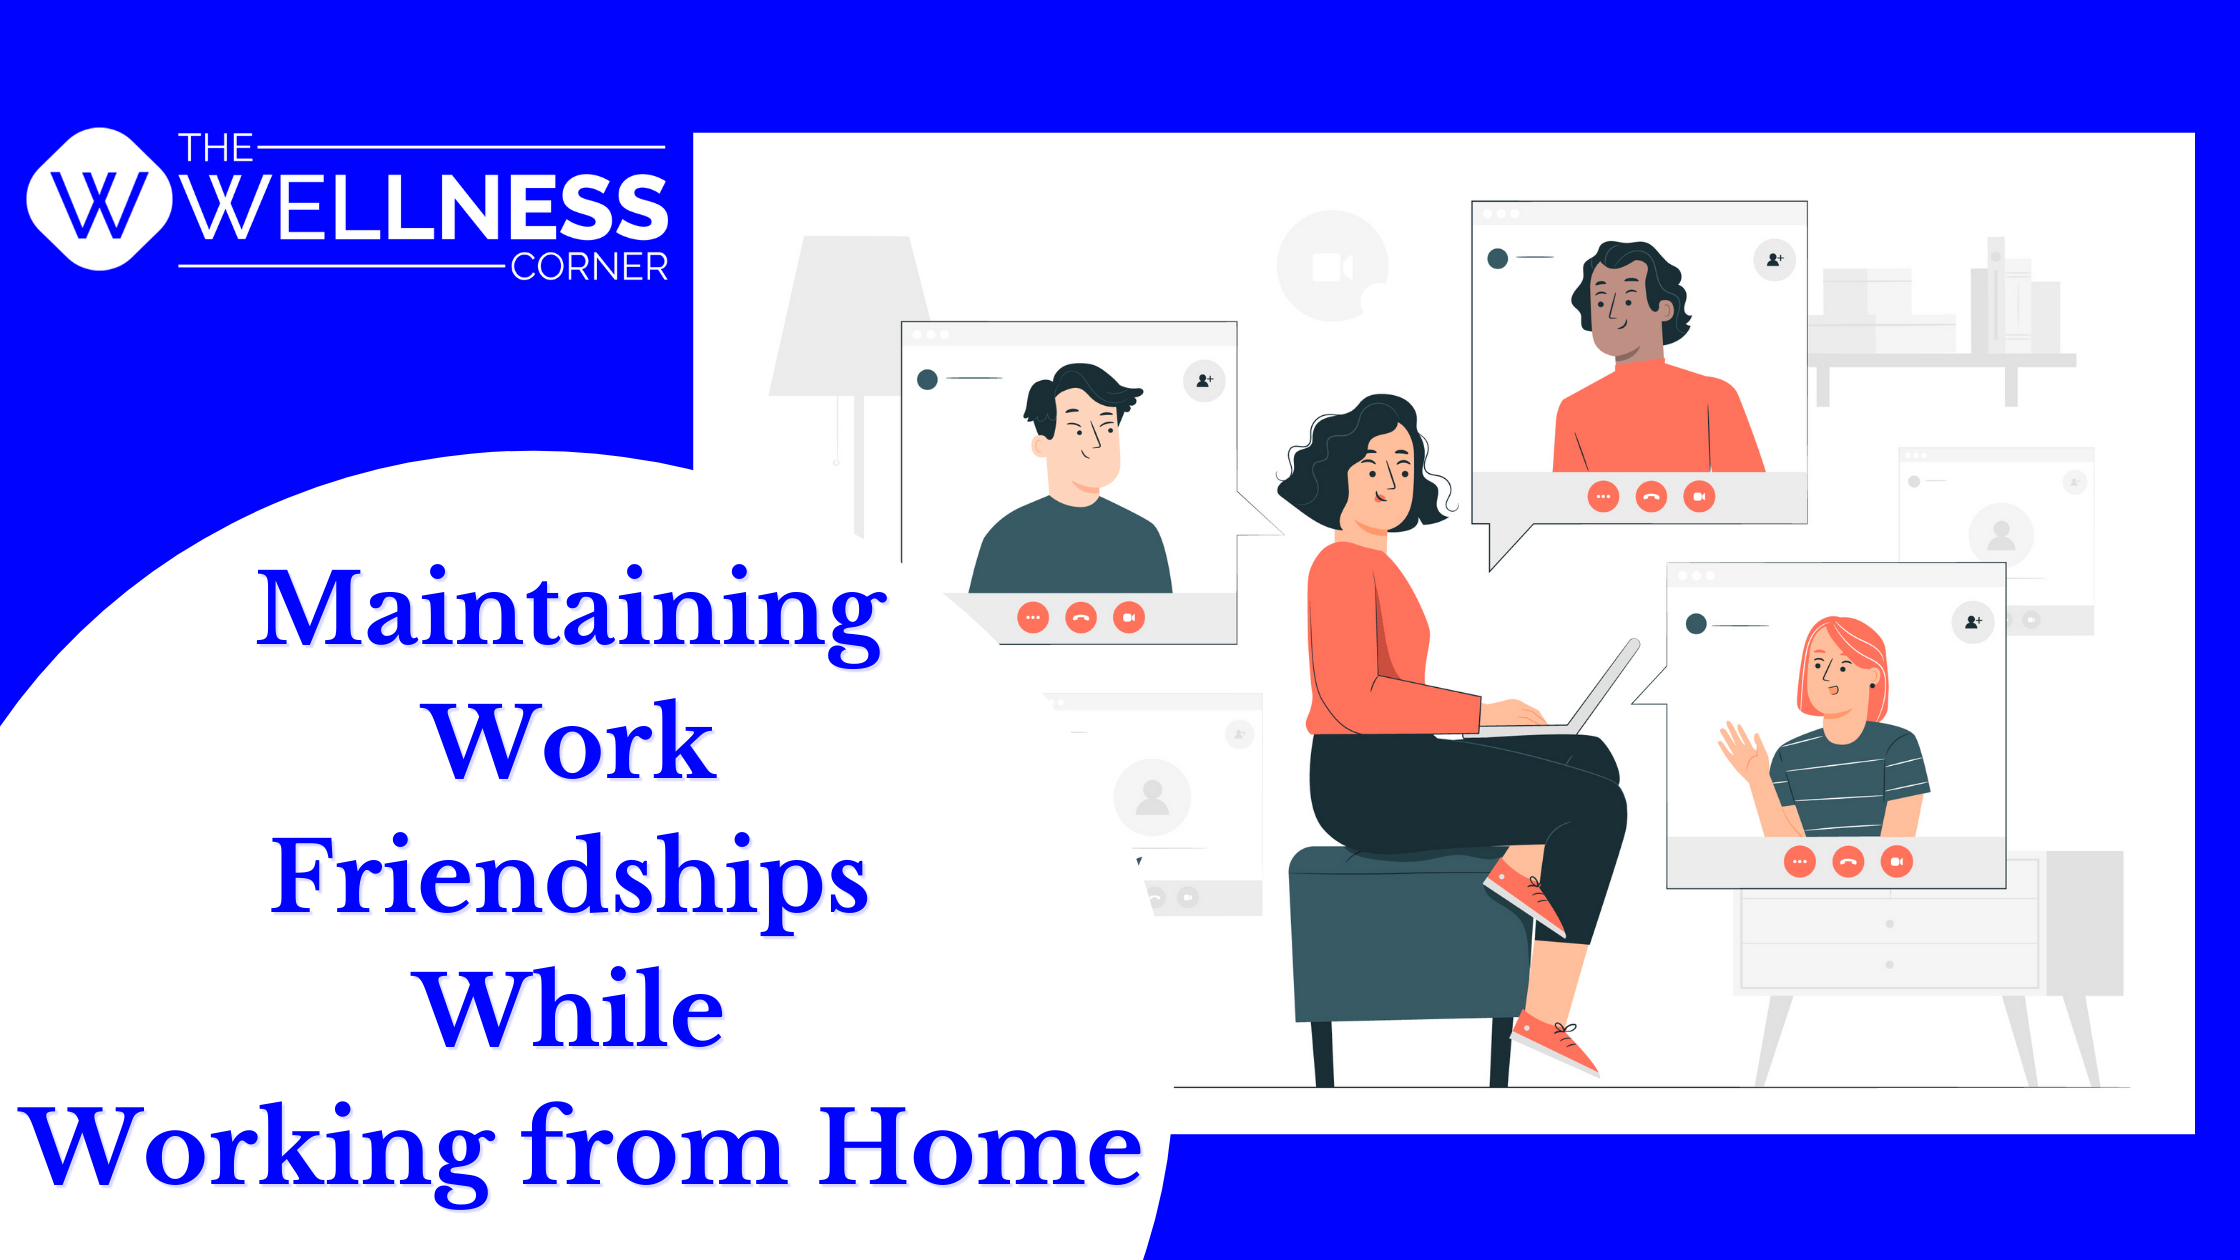 Maintaining Work Friendships While Working from Home